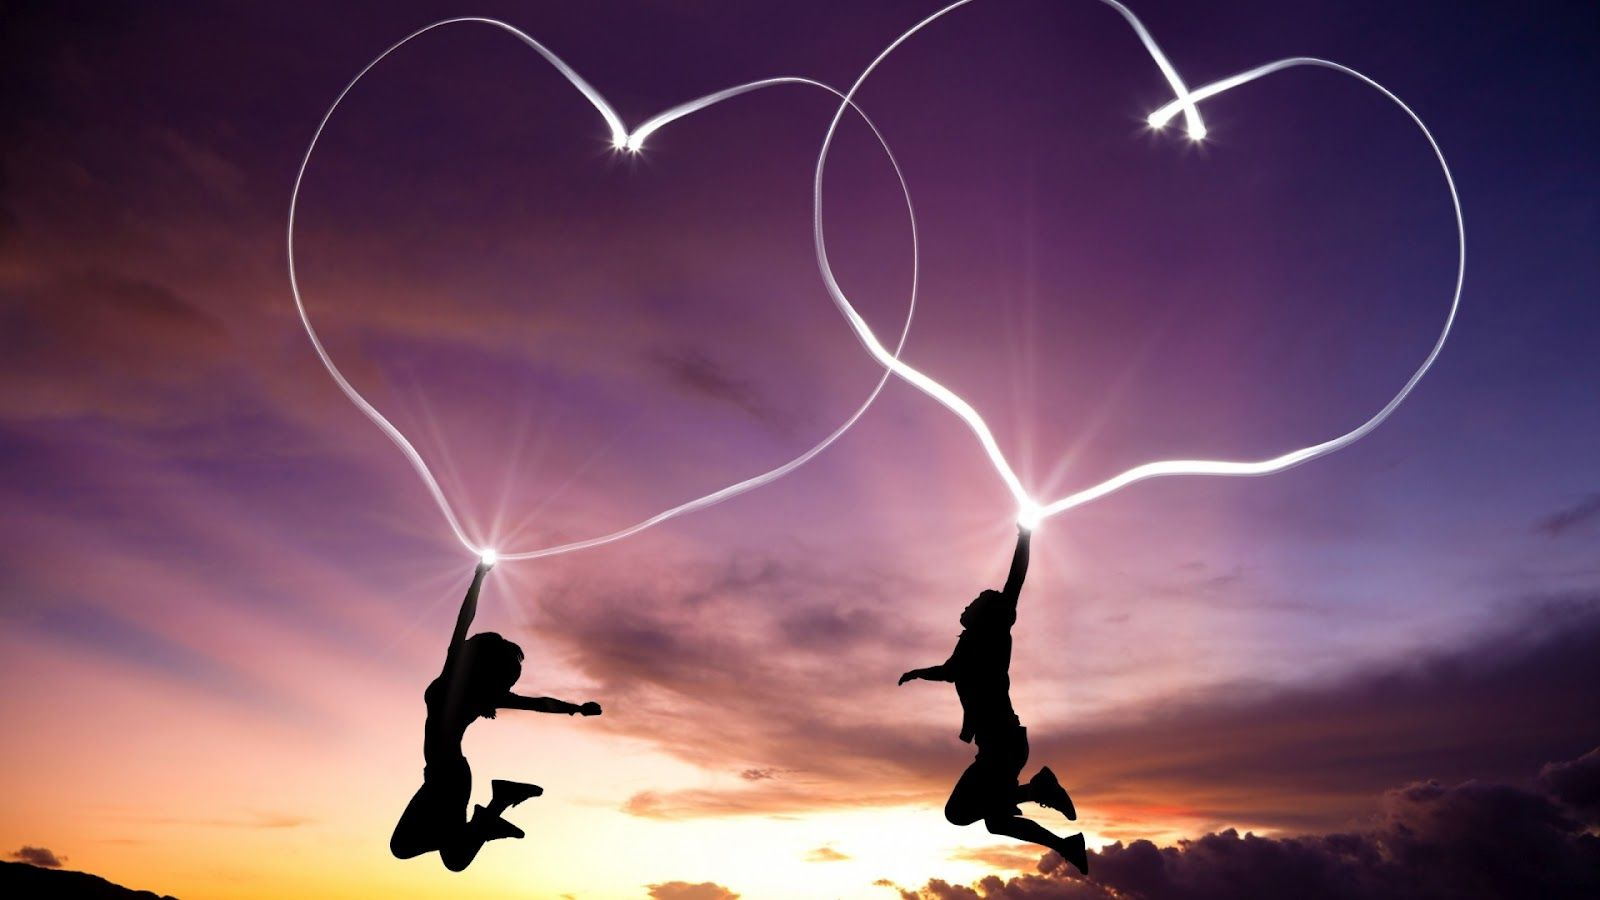 Romantic Wallpapers Romantic Wallpapers Hd Pictures Hd Wallpapers Backgrounds Photos Fitness Help Natural Lifestyle Getting Things Done